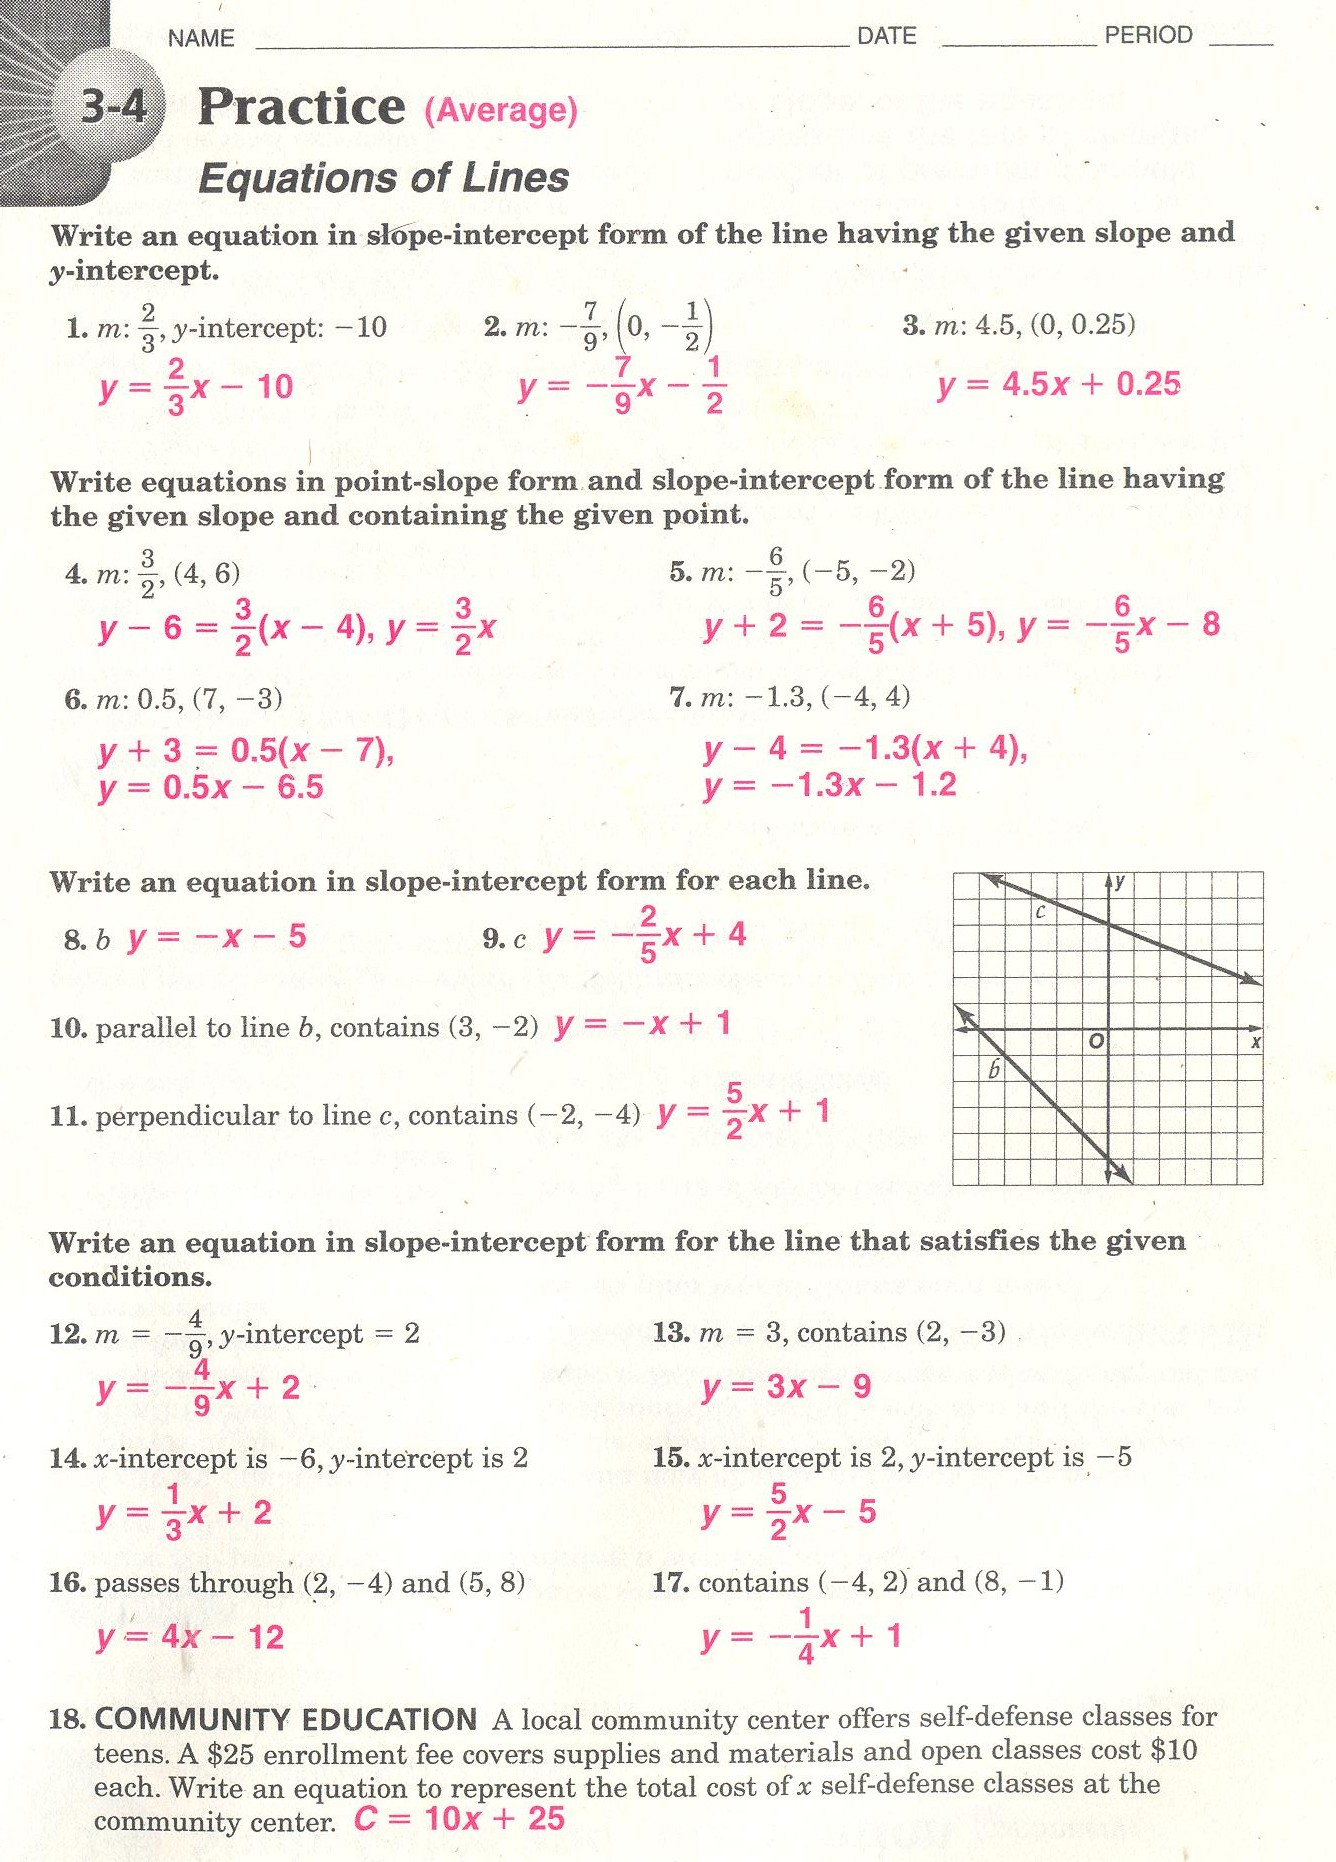 worksheet Algebra 2 Worksheet Answers mcdougal littell algebra 2 homework answers worksheet kuta software infinite with work baybayinart com distance diamond geo